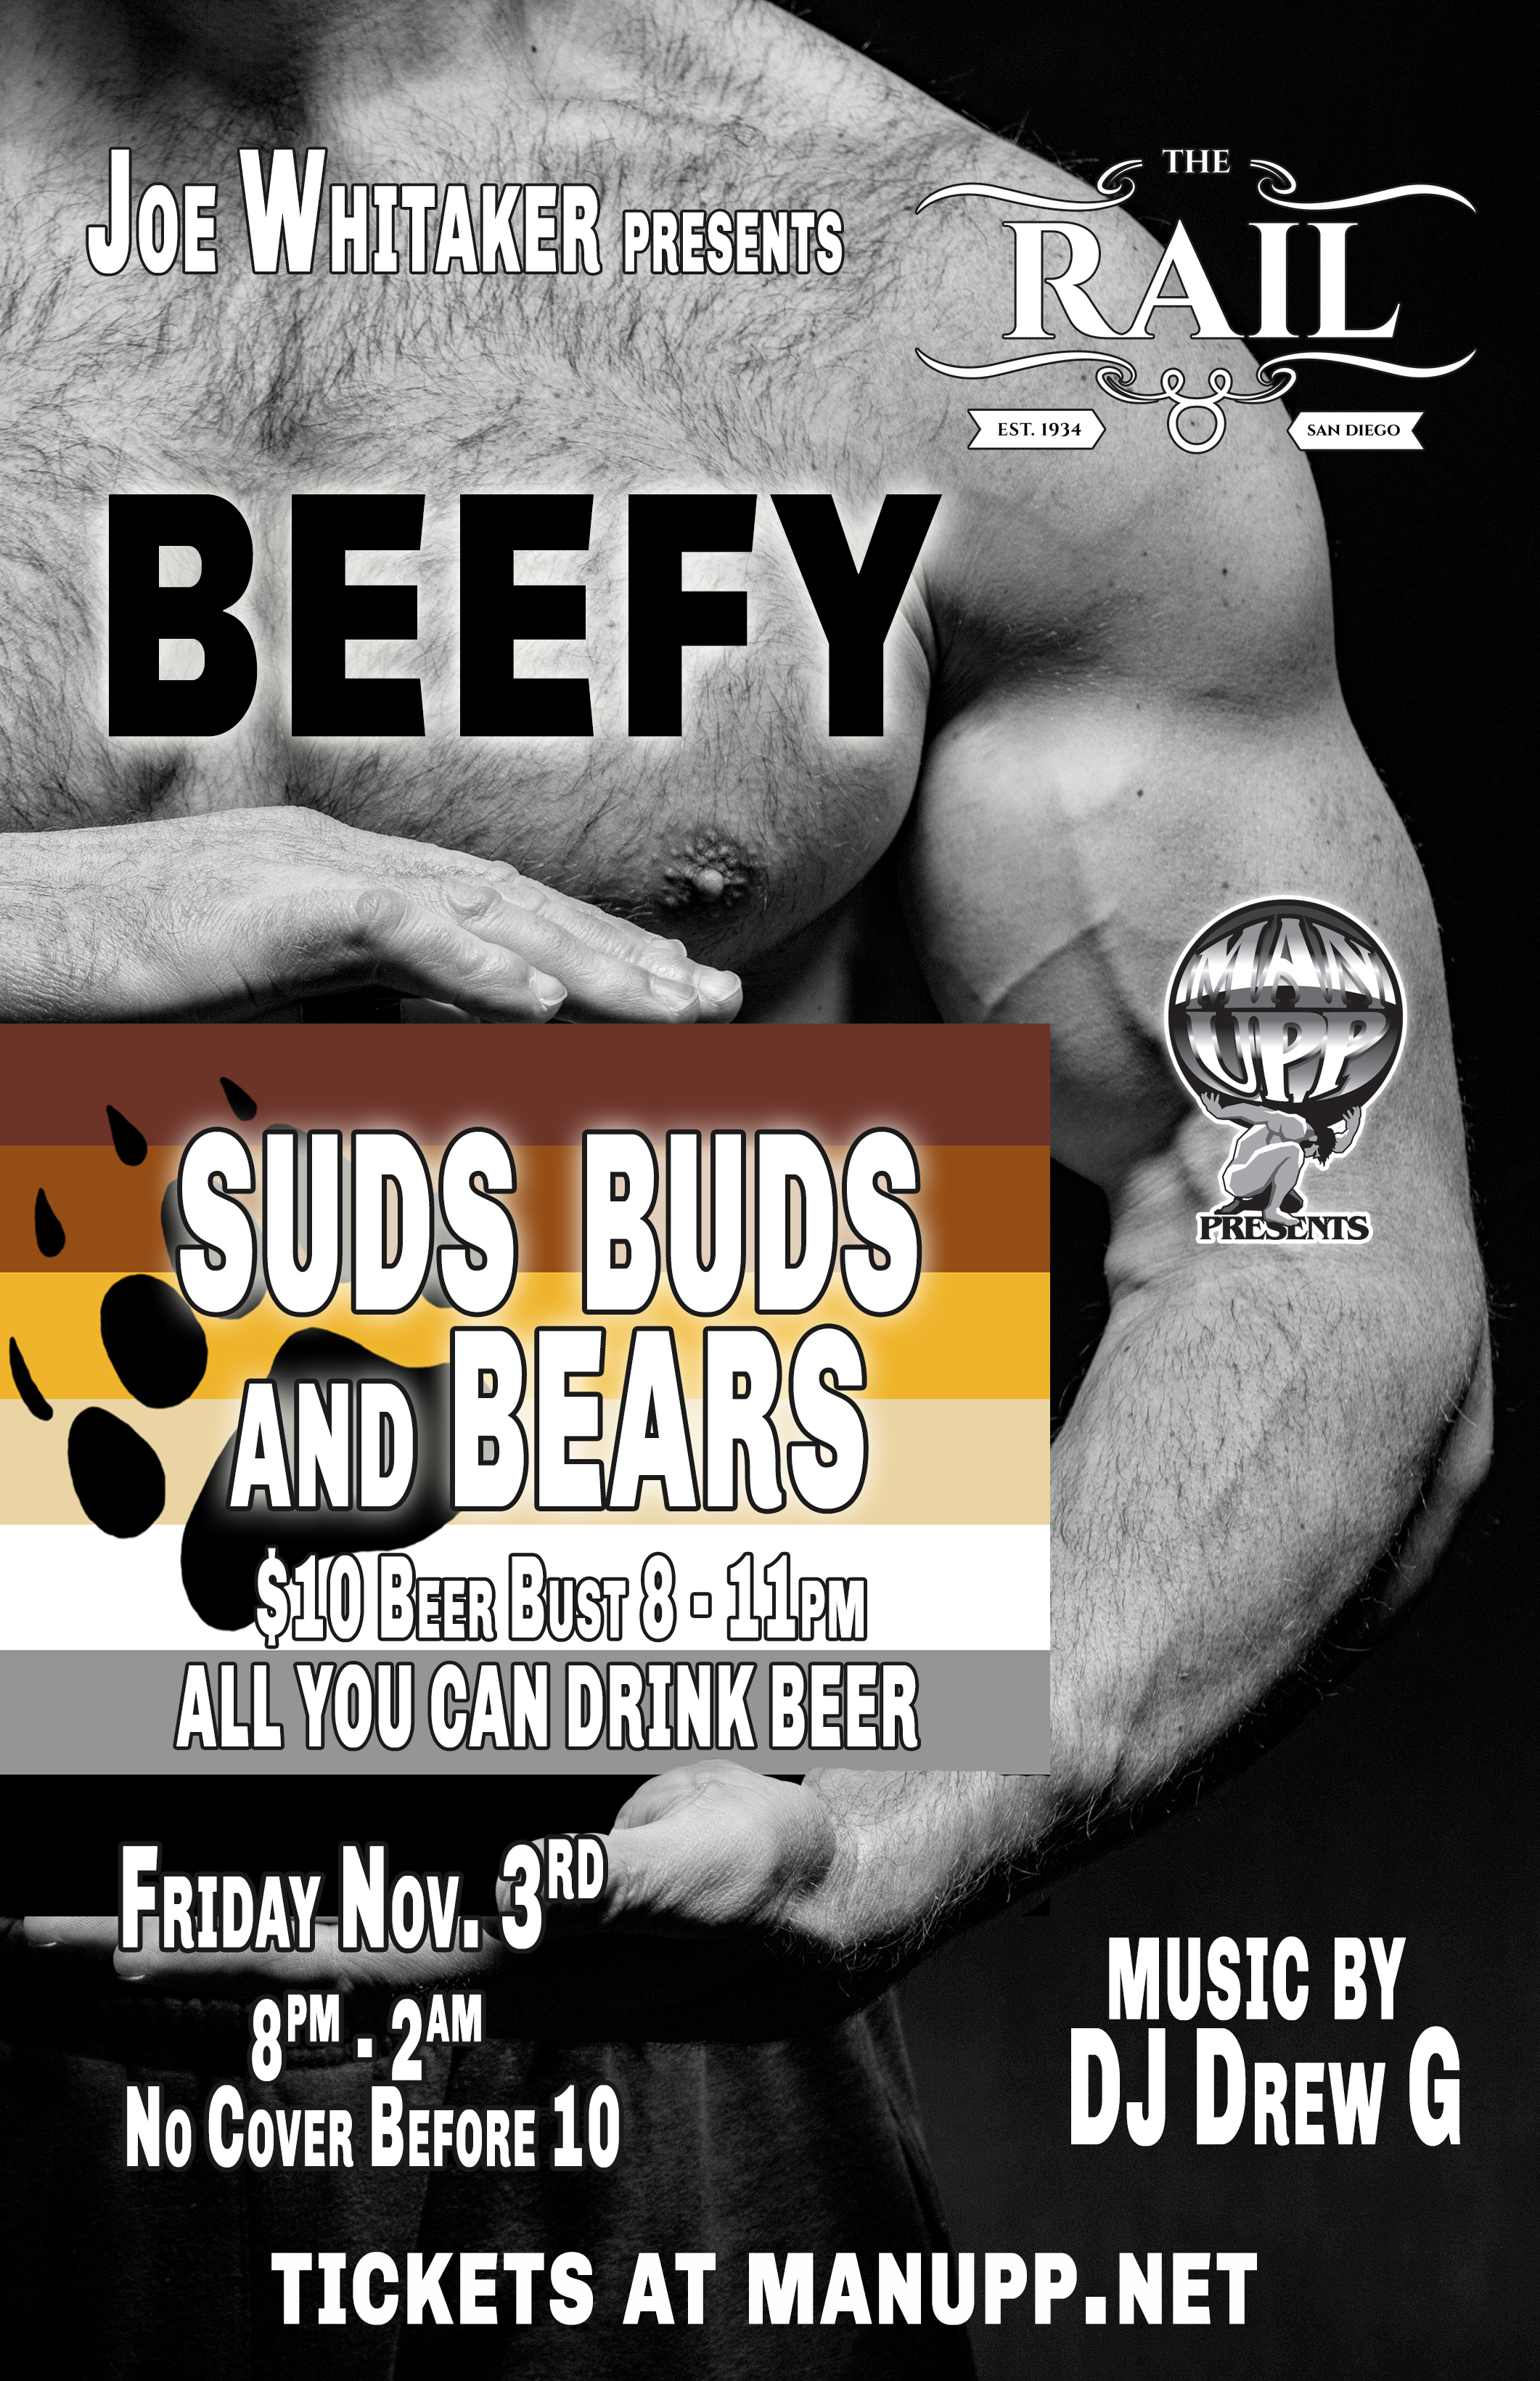 Suds, Buds & Bears San Diego by MAN UPP & Joe Whitaker